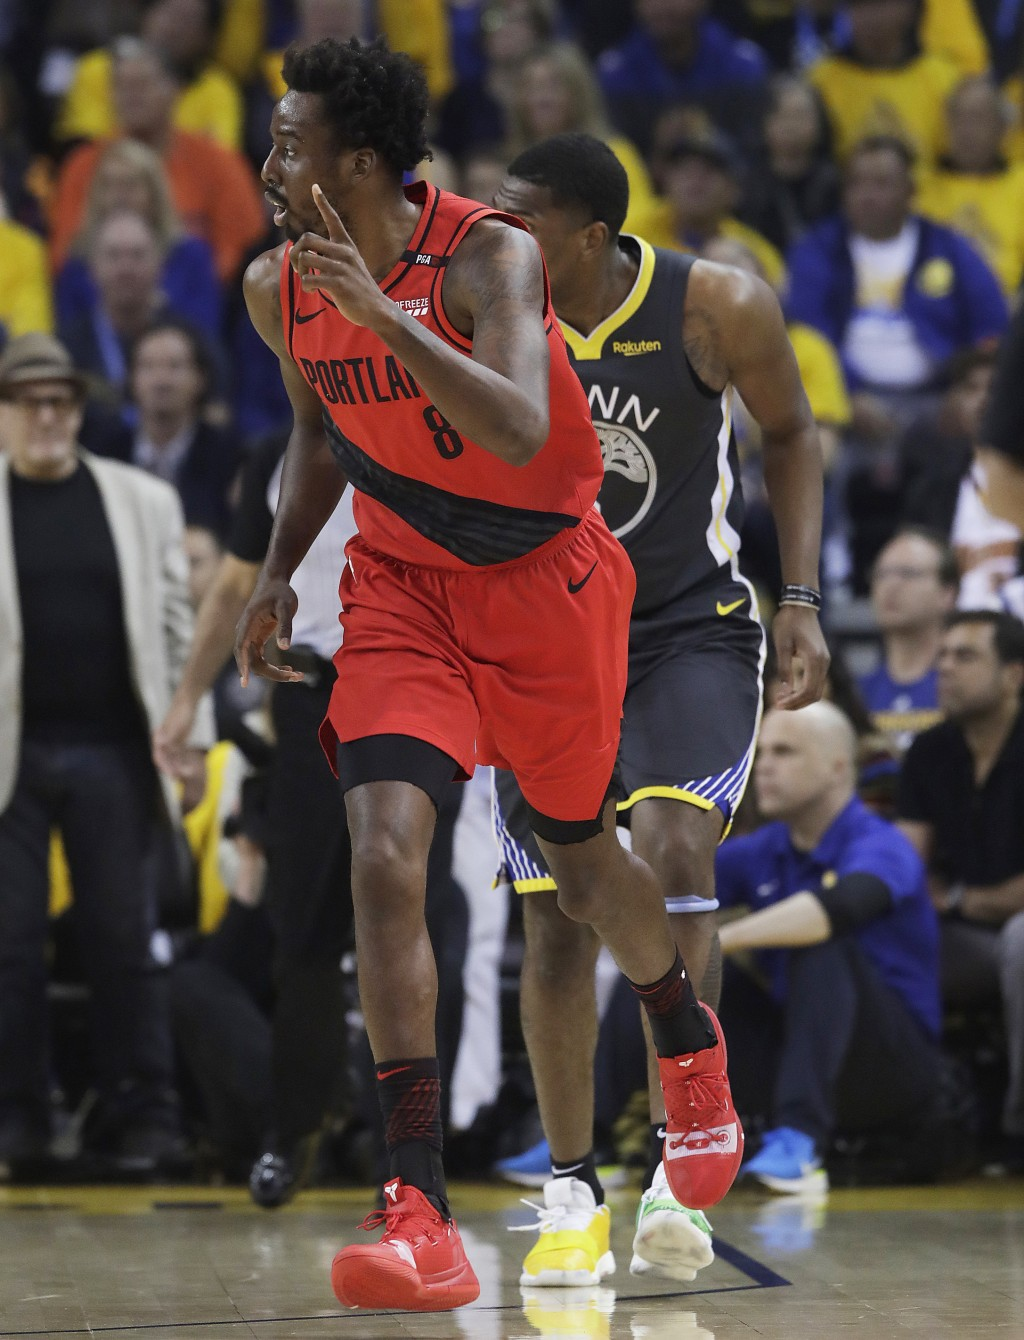 Portland Trail Blazers forward Al-Farouq Aminu (8) gestures after scoring against the Golden State Warriors during the first half of Game 2 of the NBA